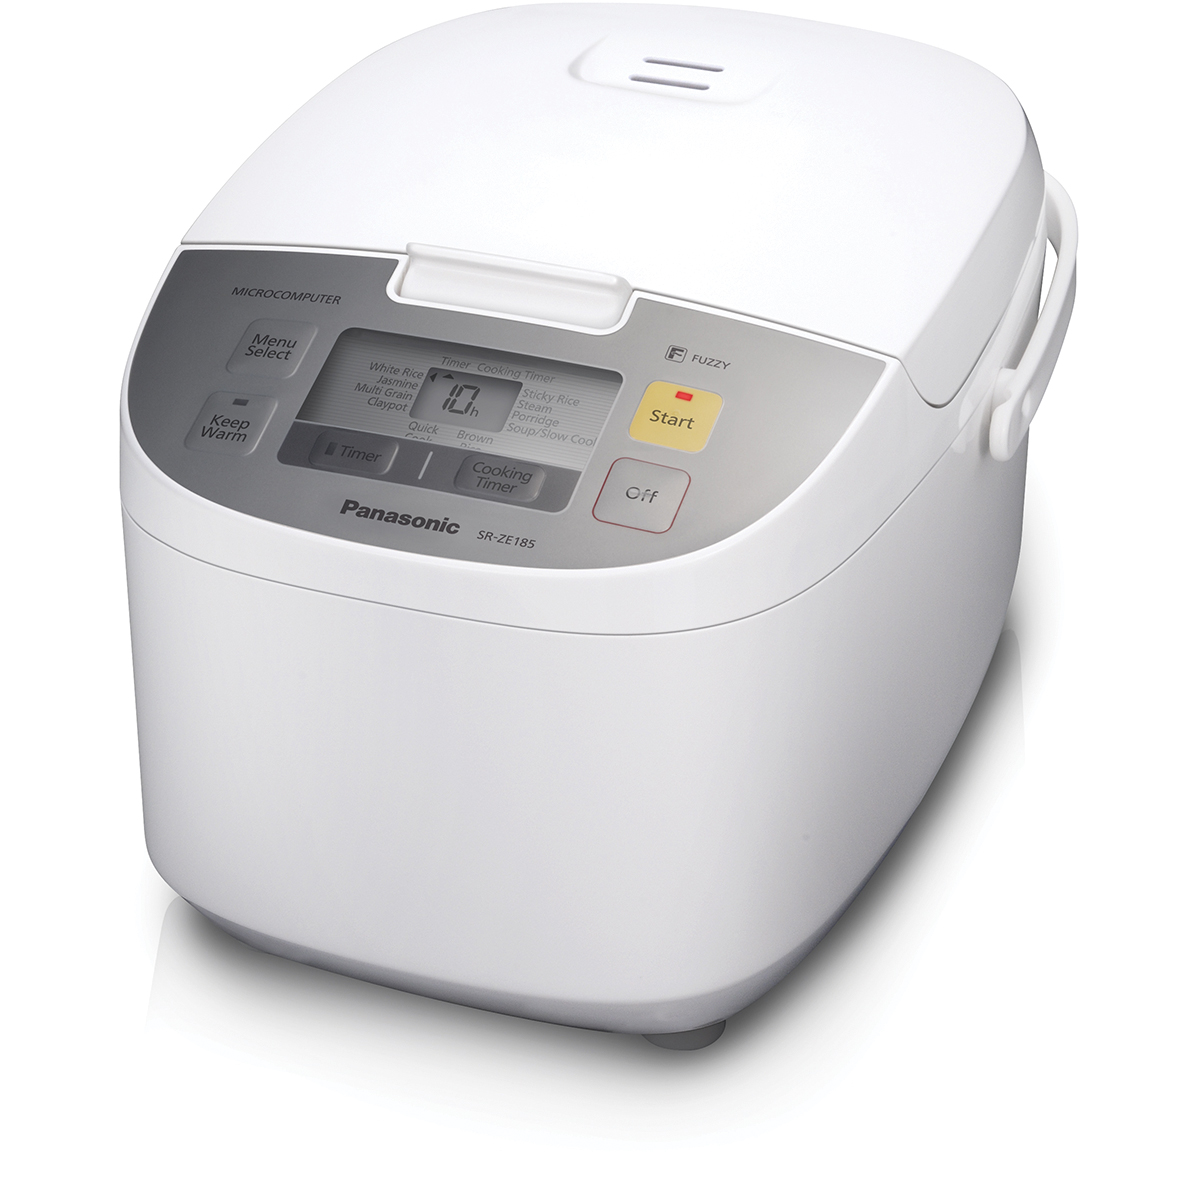 Panasonic SR-ZE185WST Rice Cooker